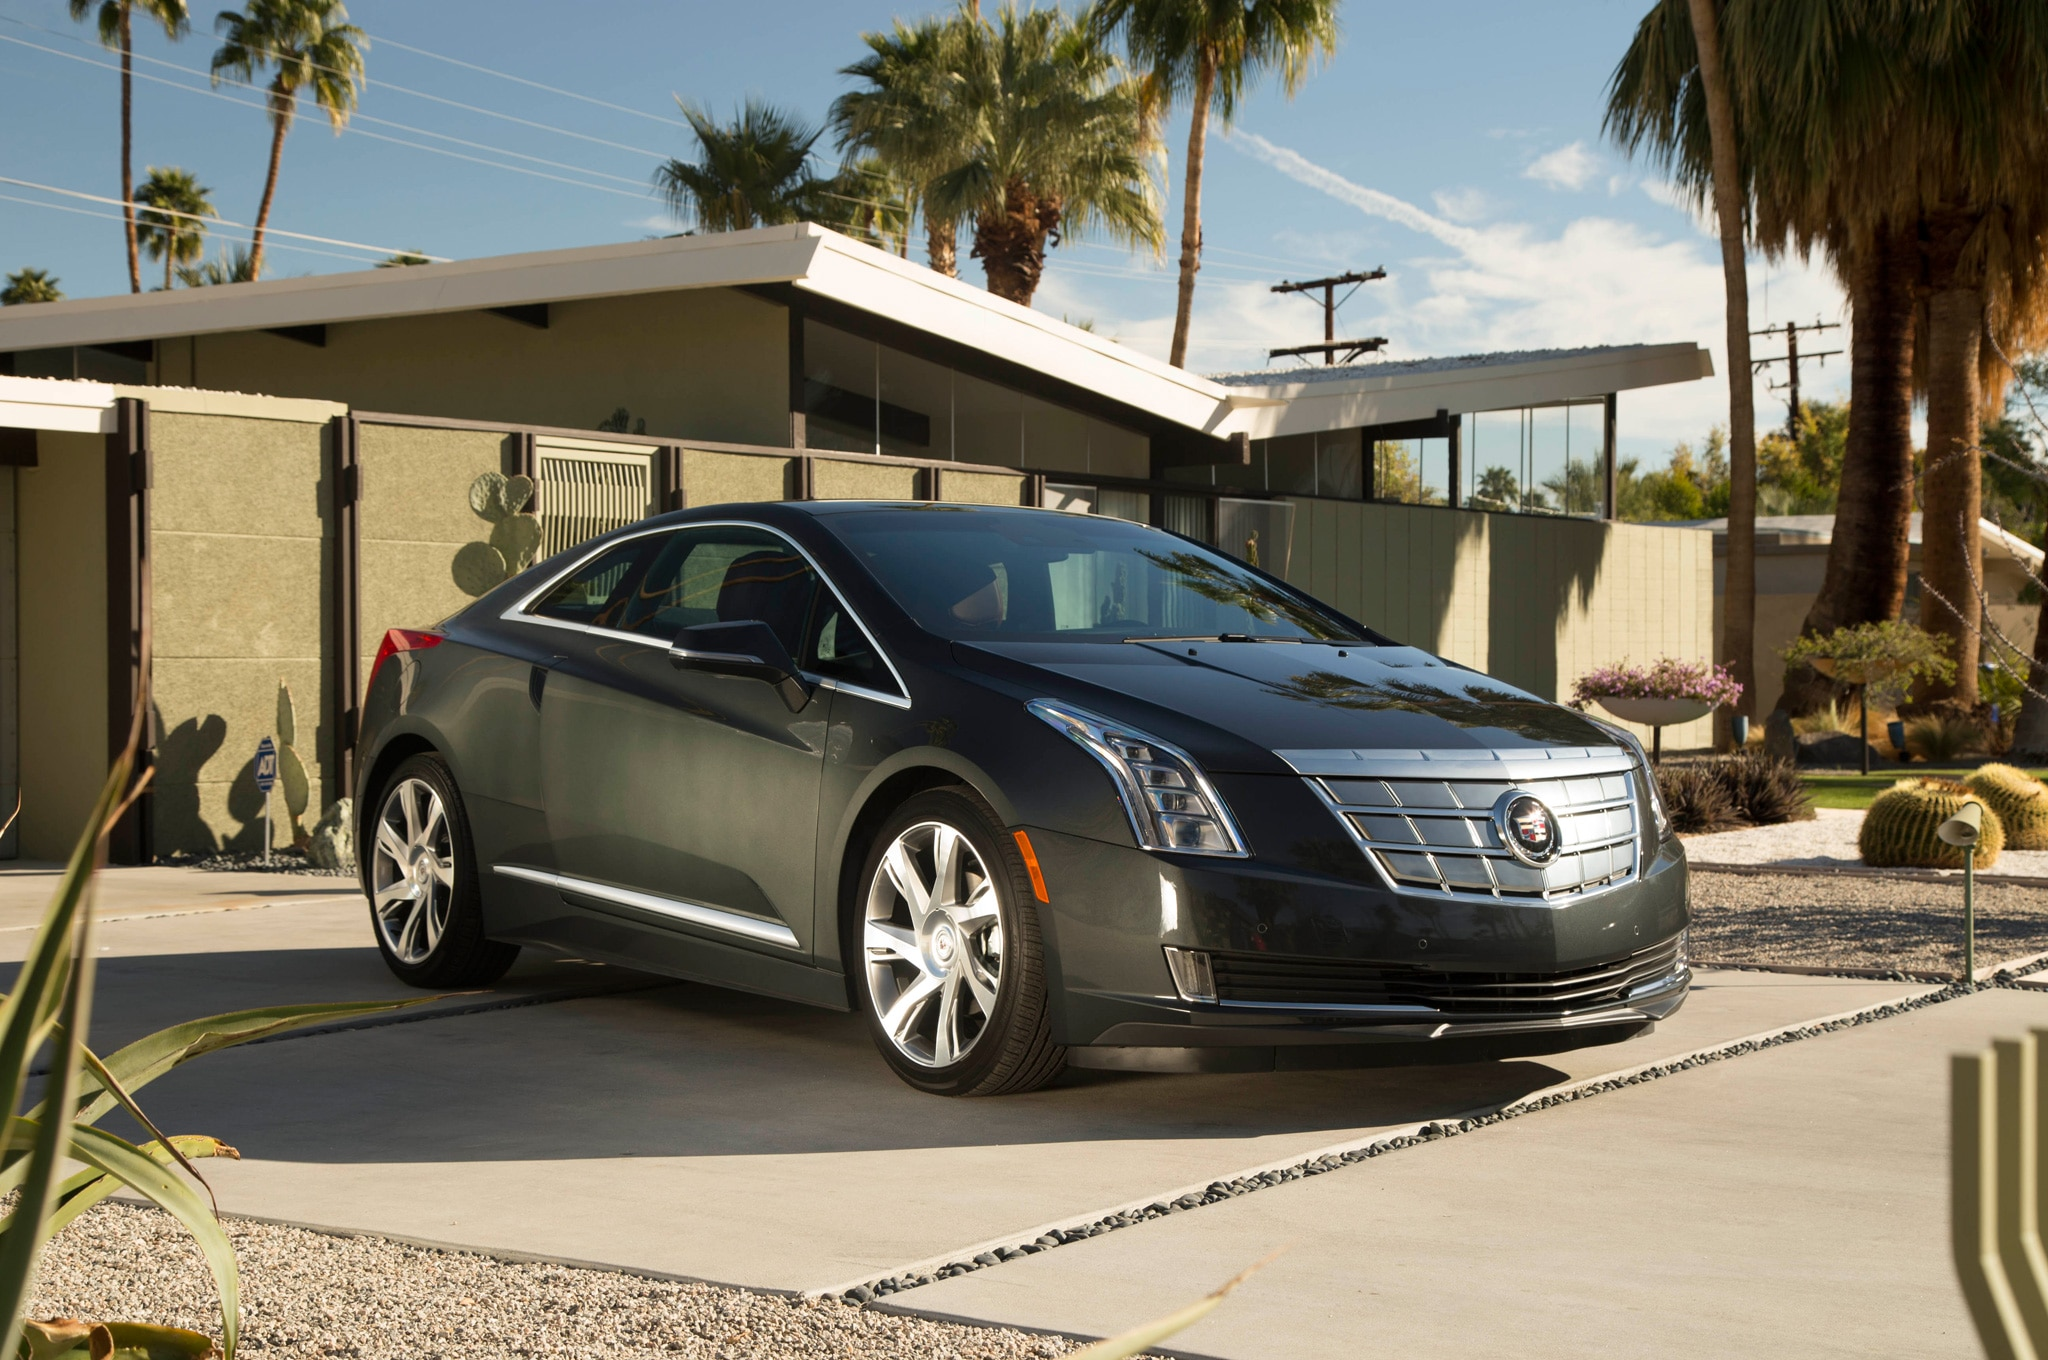 Then vs. Now: 1967 Cadillac Eldorado Vs. 2014 Cadillac ELR